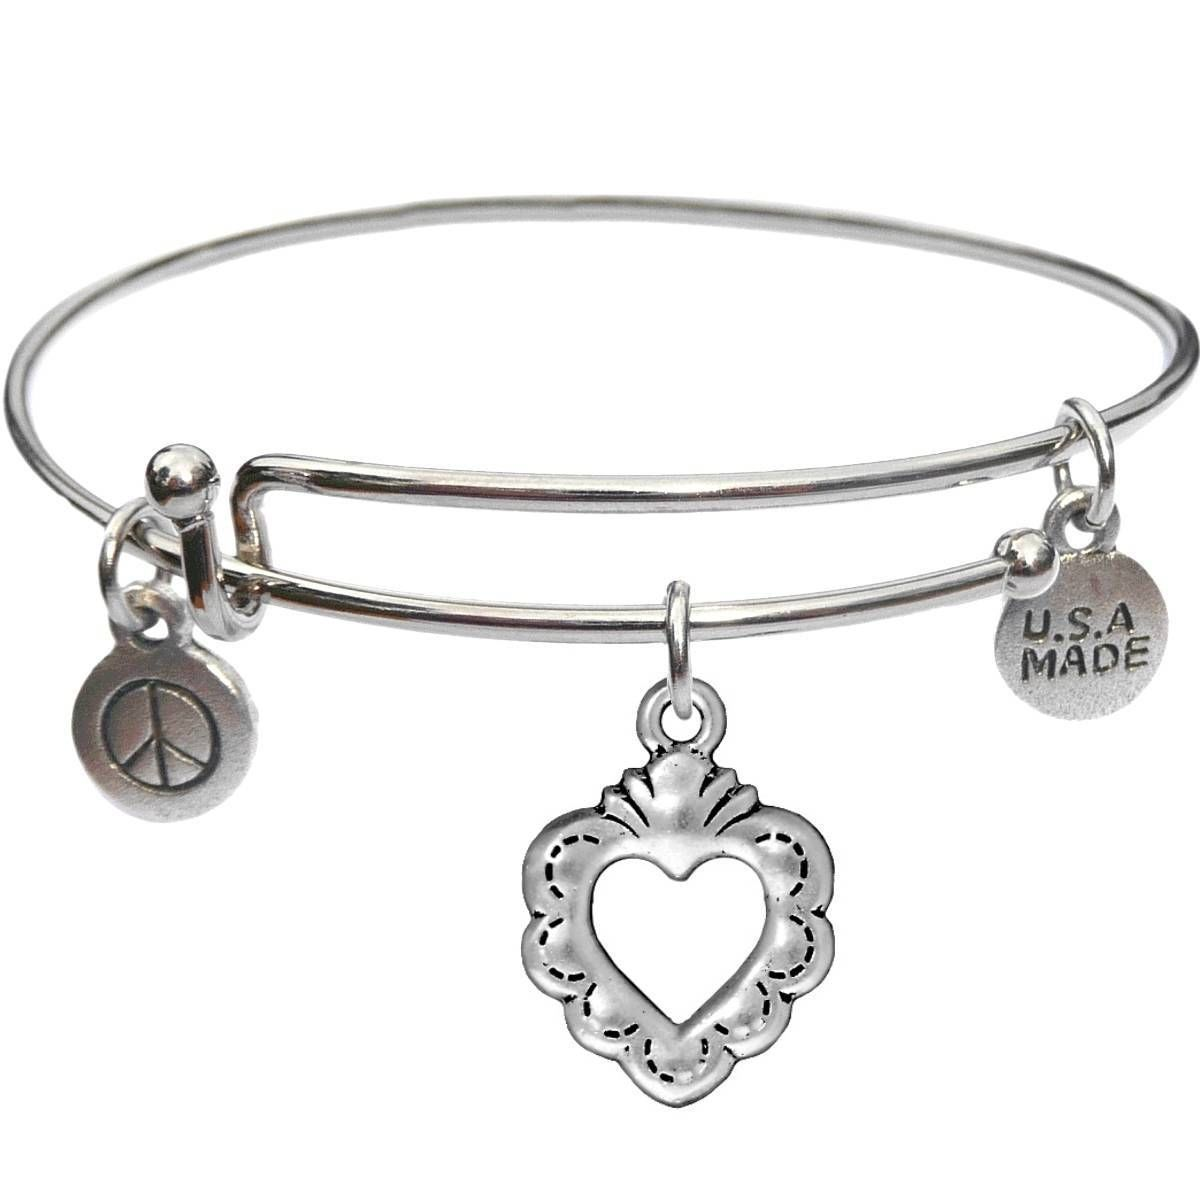 Bangle Bracelet and Open Heart - USA Made - BBandJT157